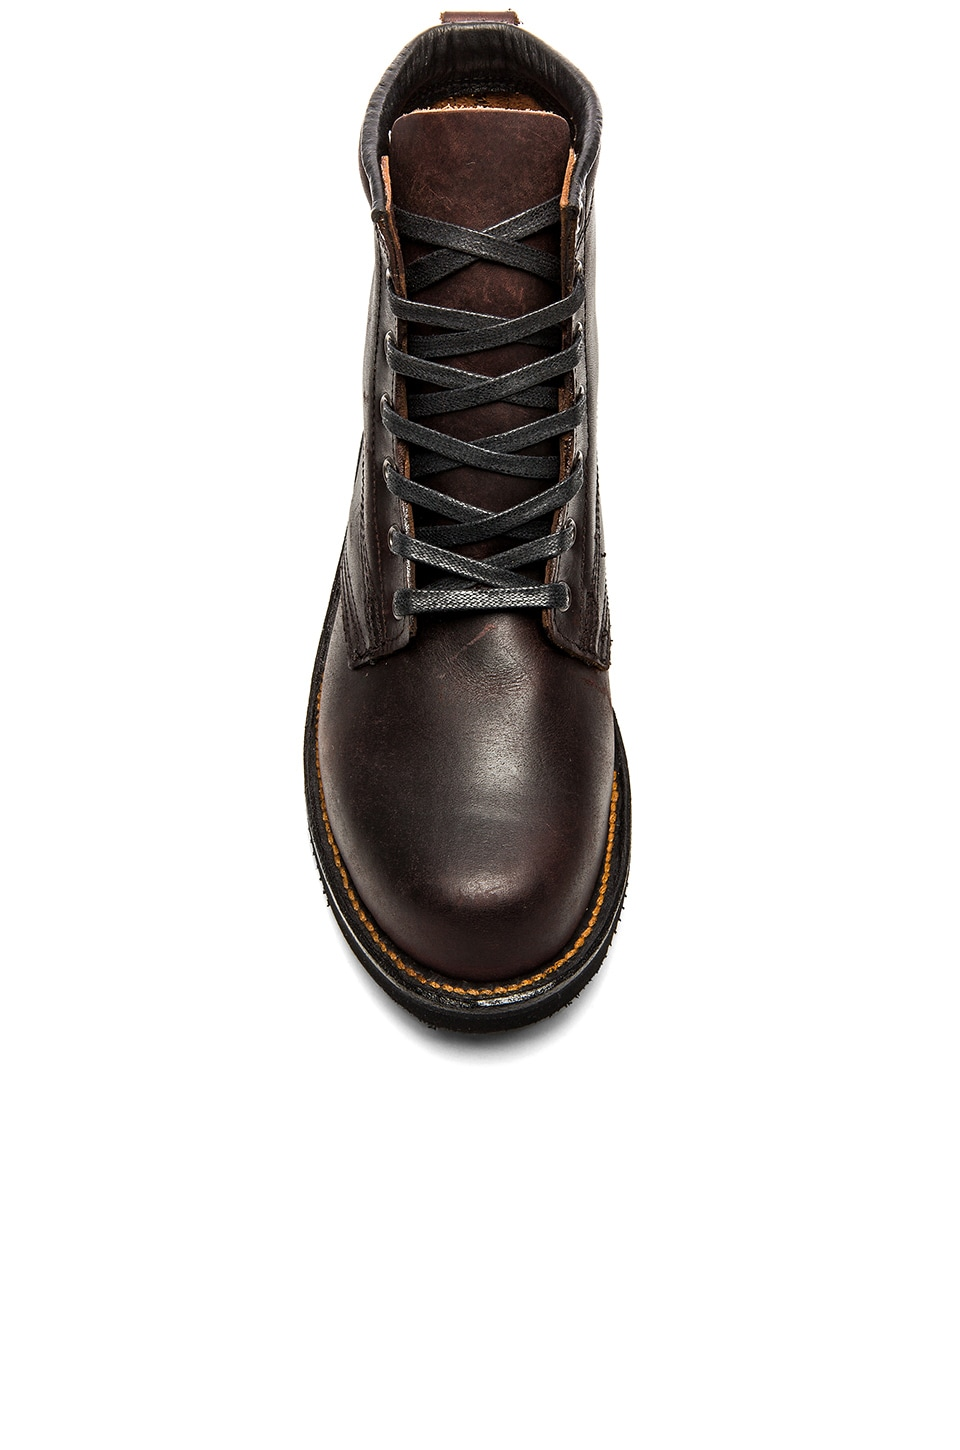 "Broken Homme James 7"" Boot in Oxblood"